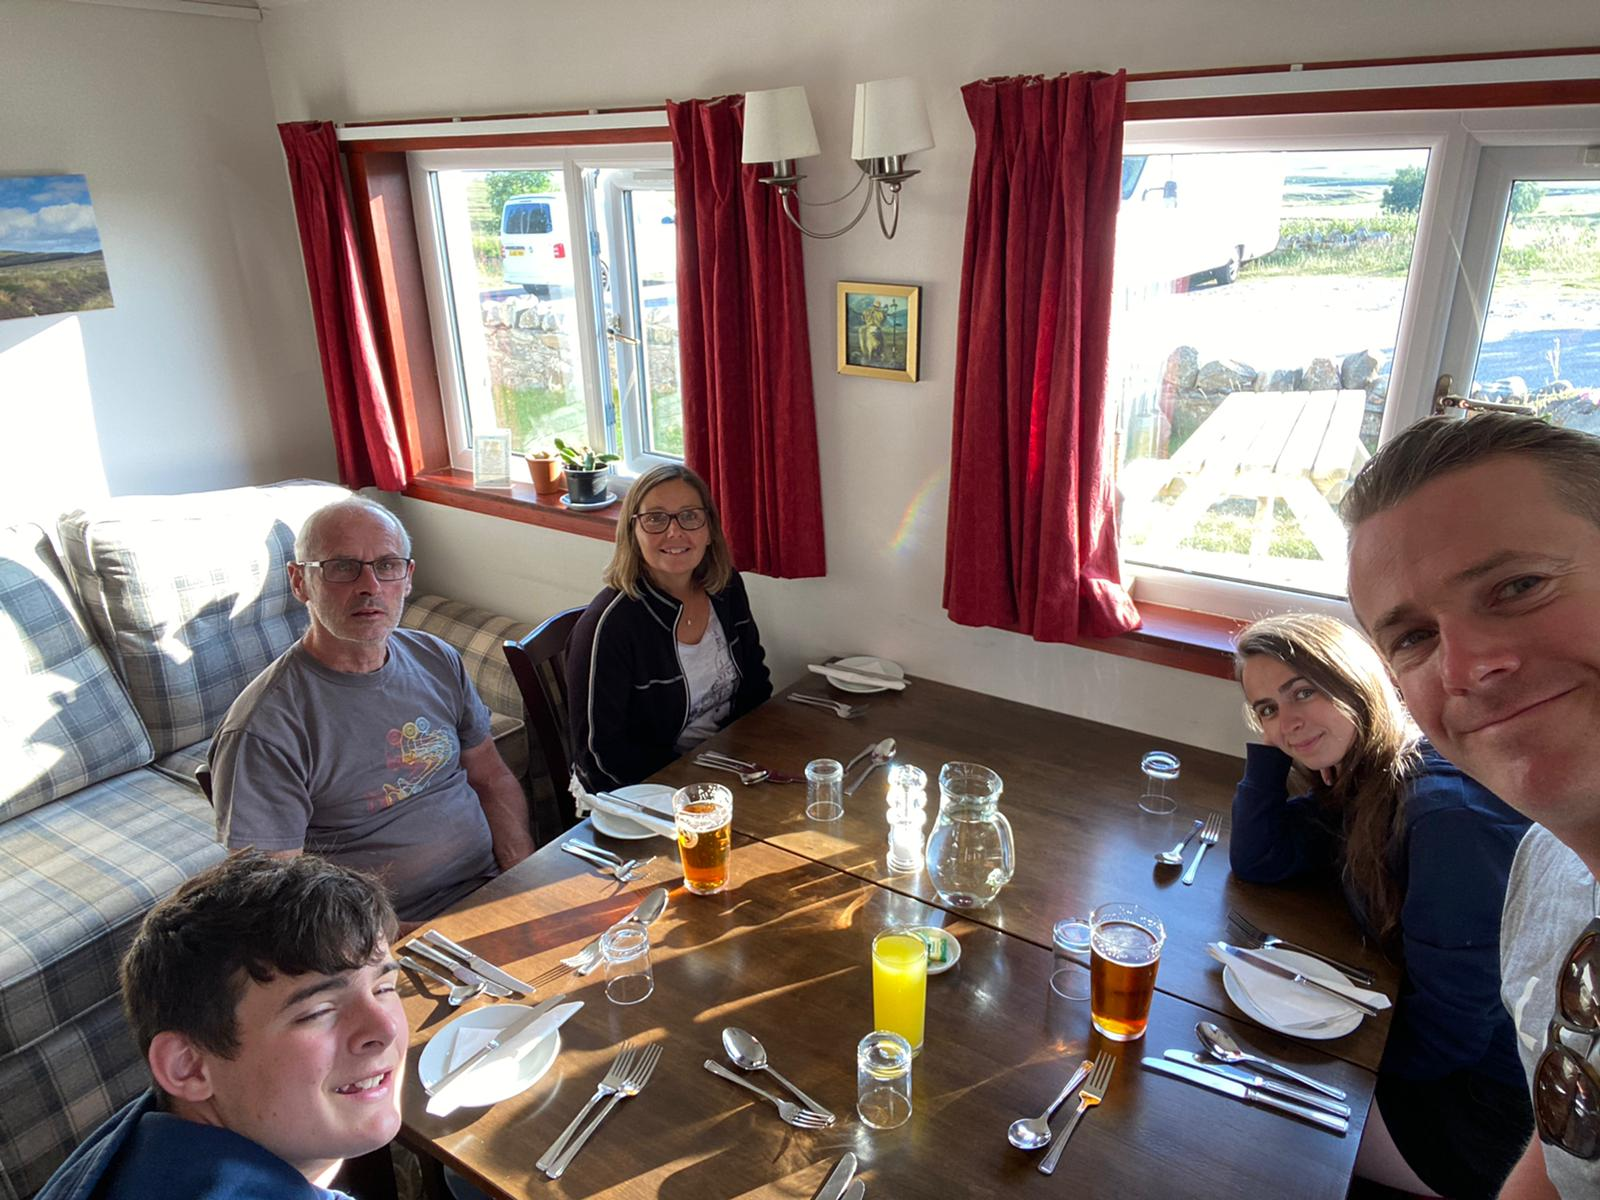 Day 13 - Inverness to The Crask Inn